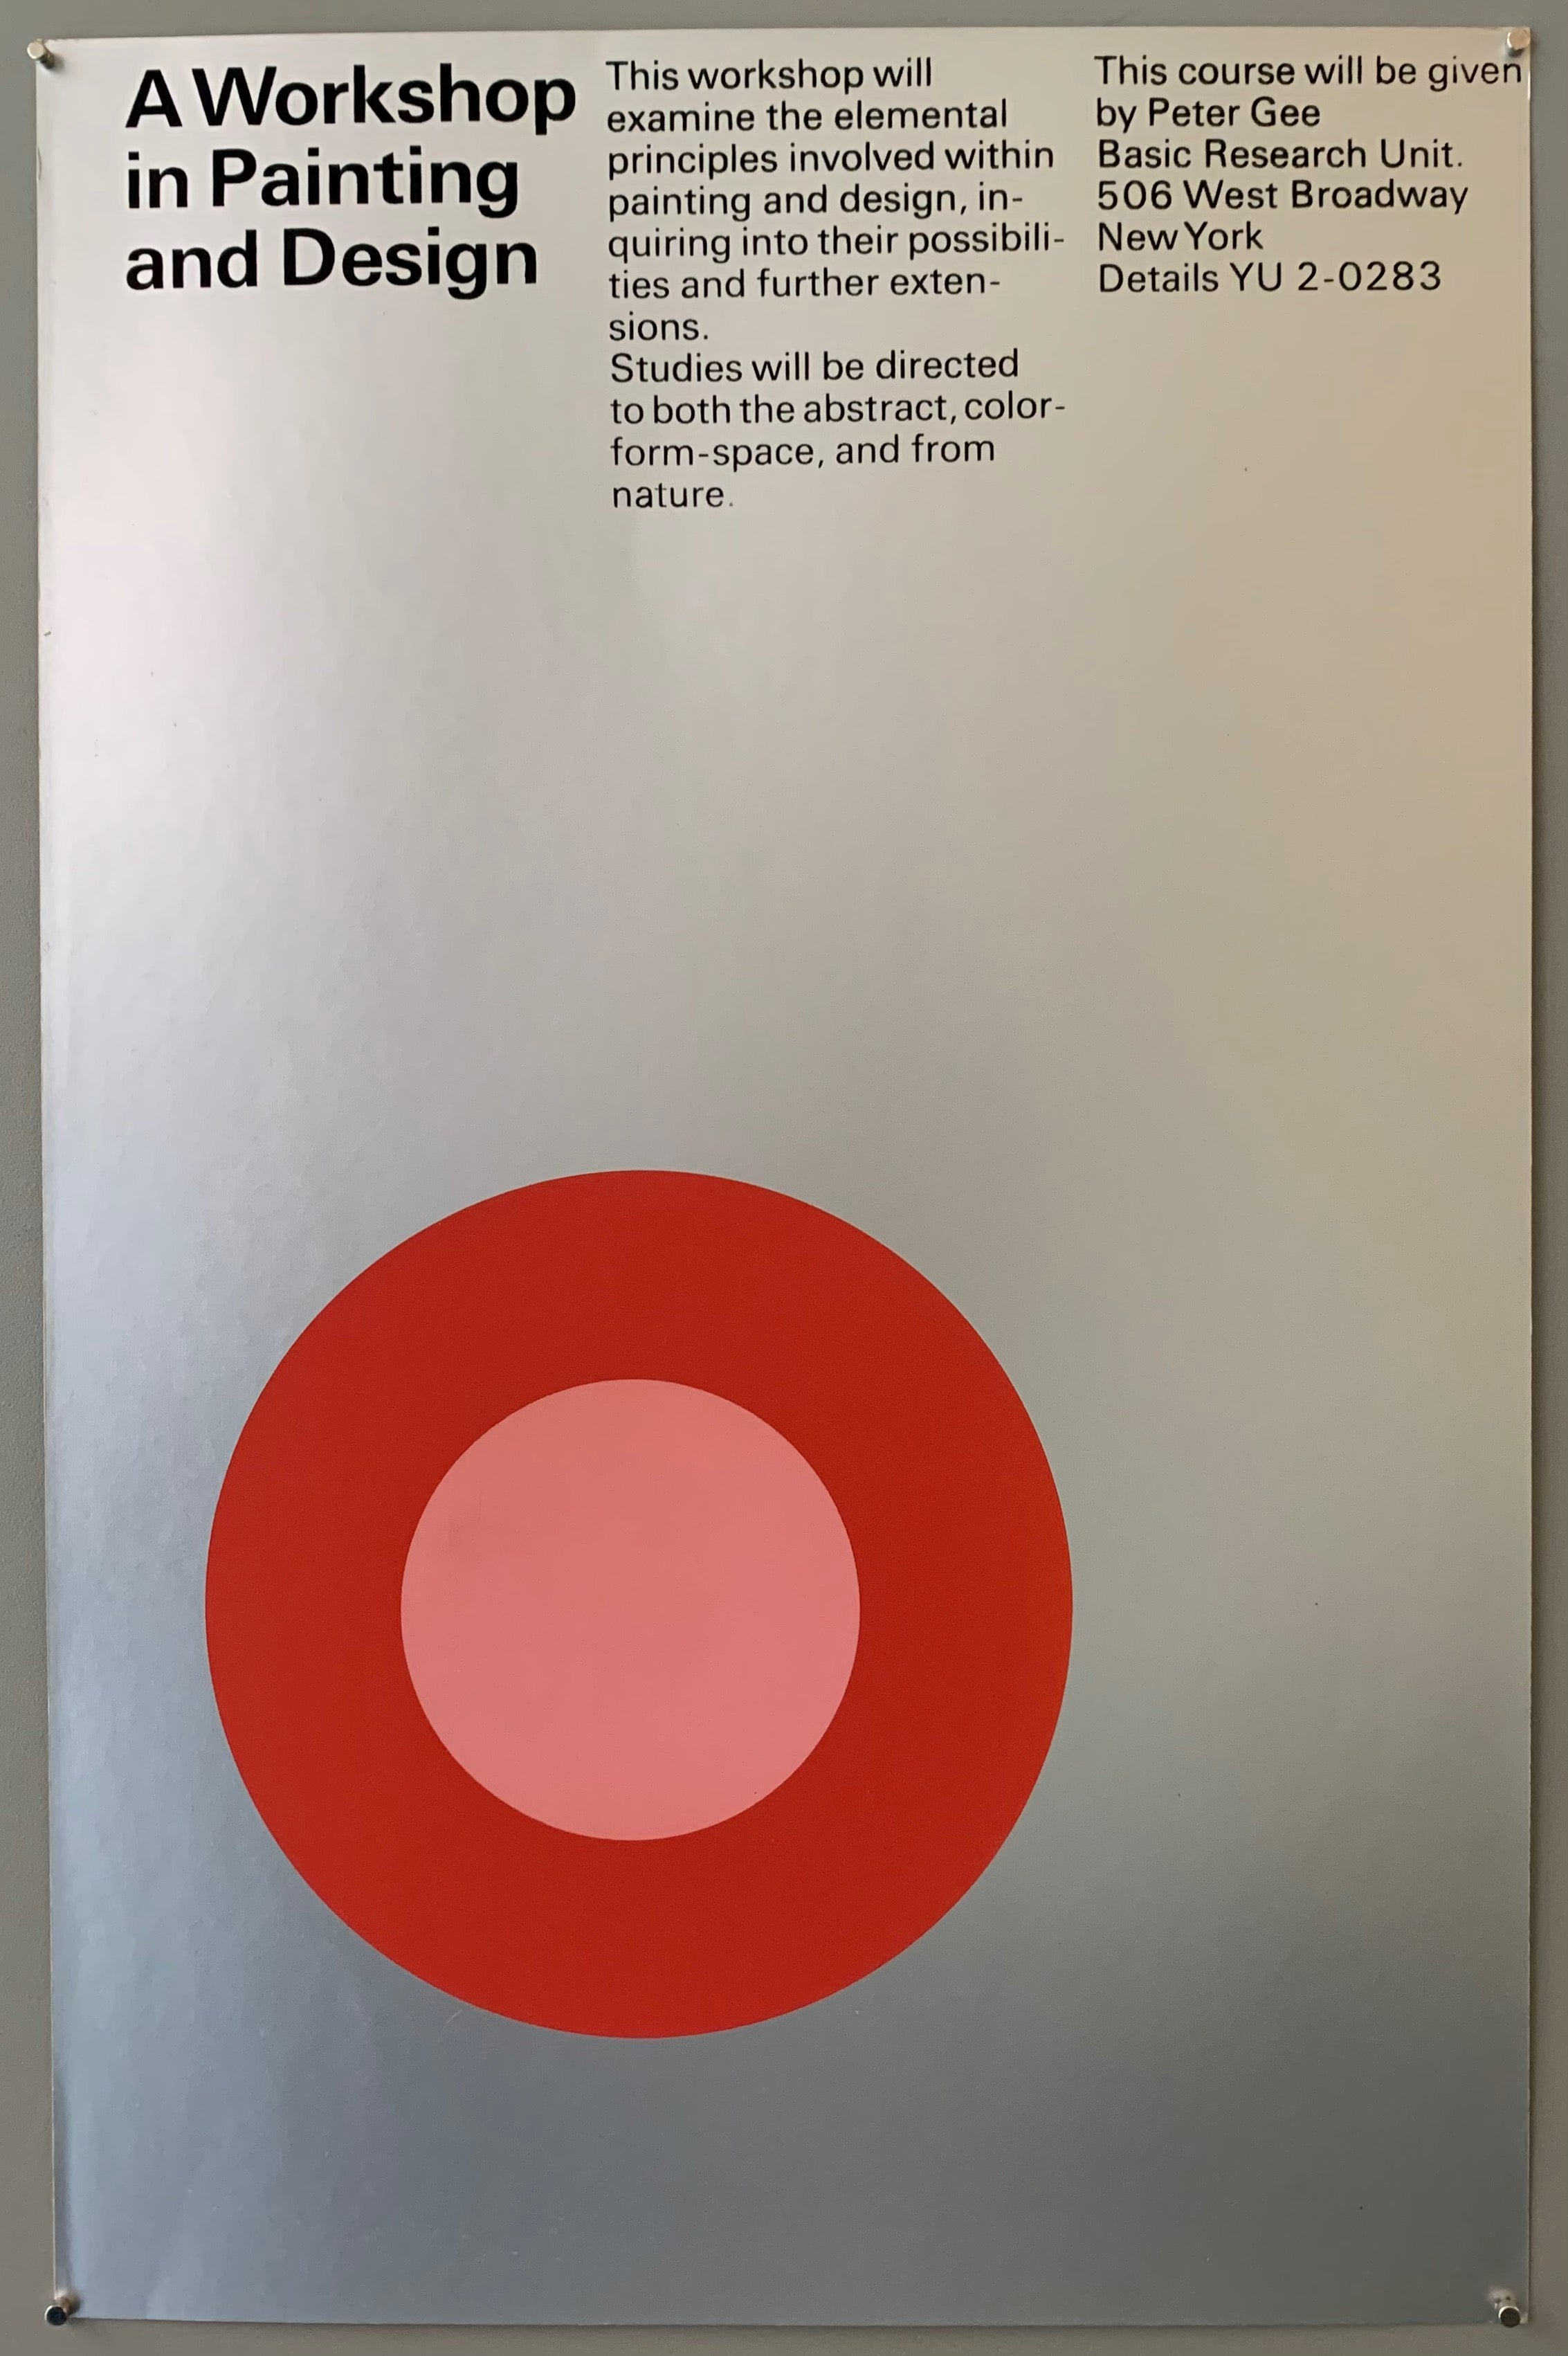 Silver poster with a red and pink target